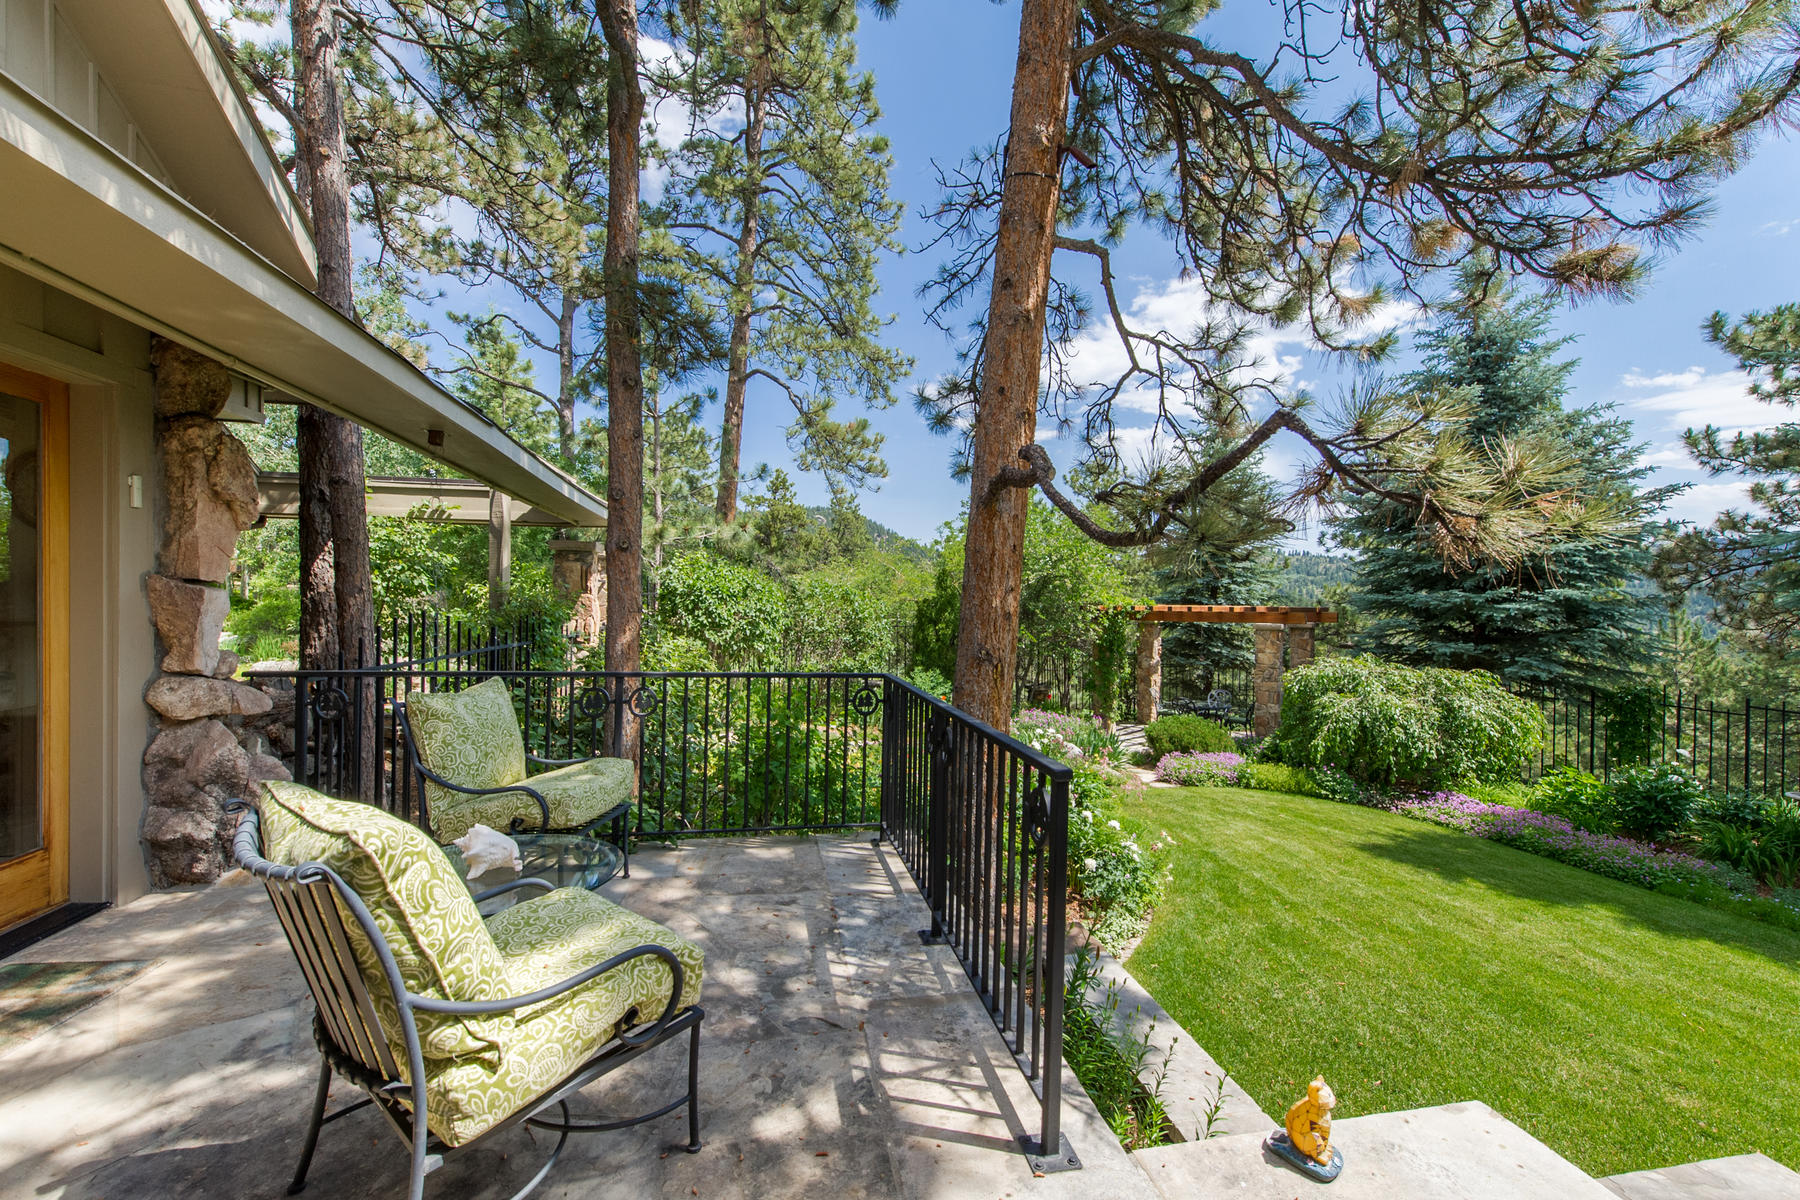 Additional photo for property listing at Tranquil Estate & Equestrian Property 7321 Flagstaff Rd Boulder, Colorado 80302 United States